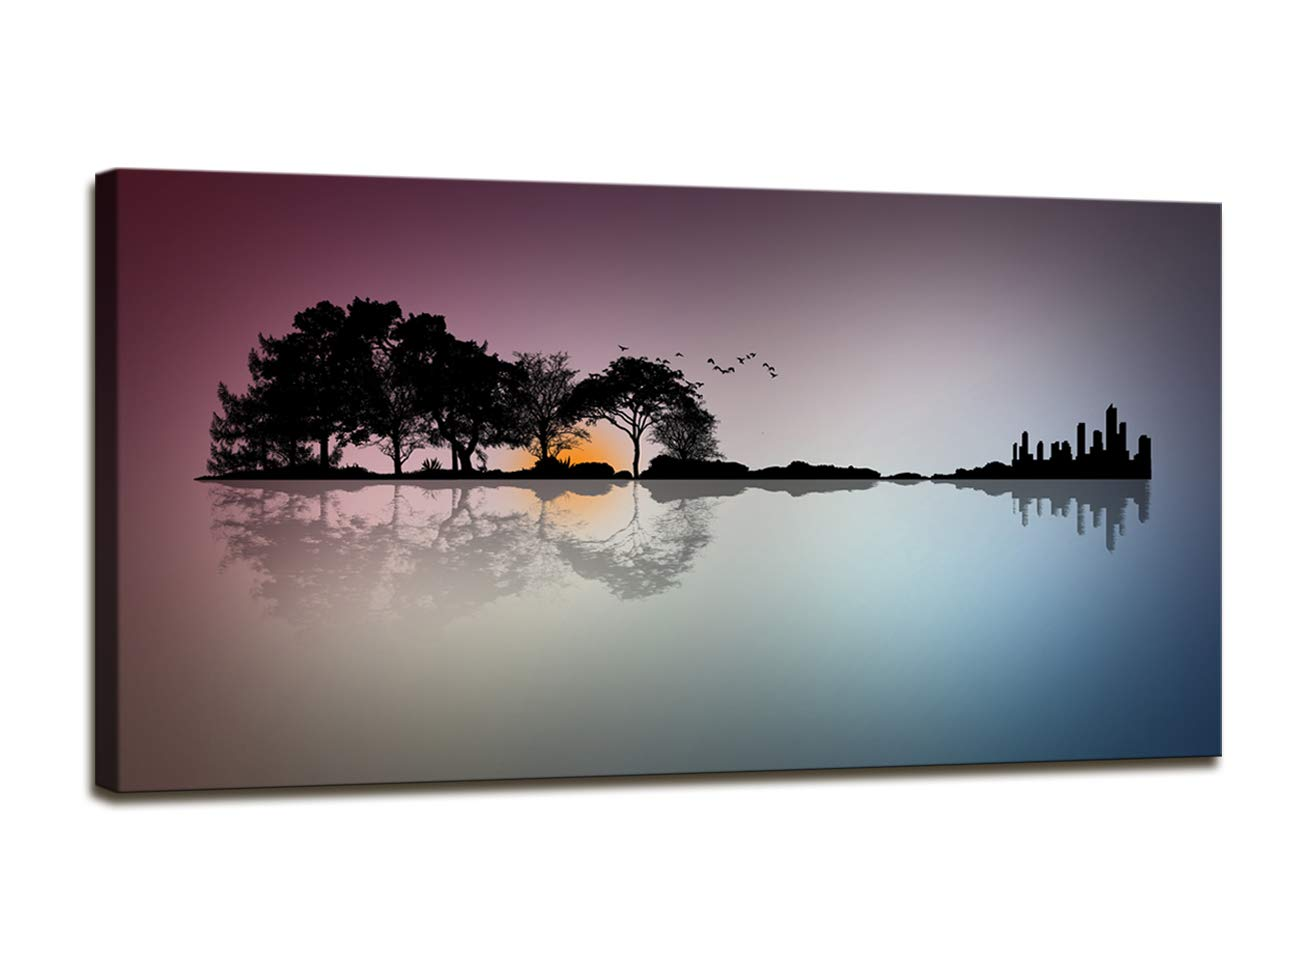 A72662 Canvas Wall Art for Living Room Bathroom Wall Decor for Bedroom Kitchen Artwork Guitar Island Canvas Prints Man Cave Music Lover Gift